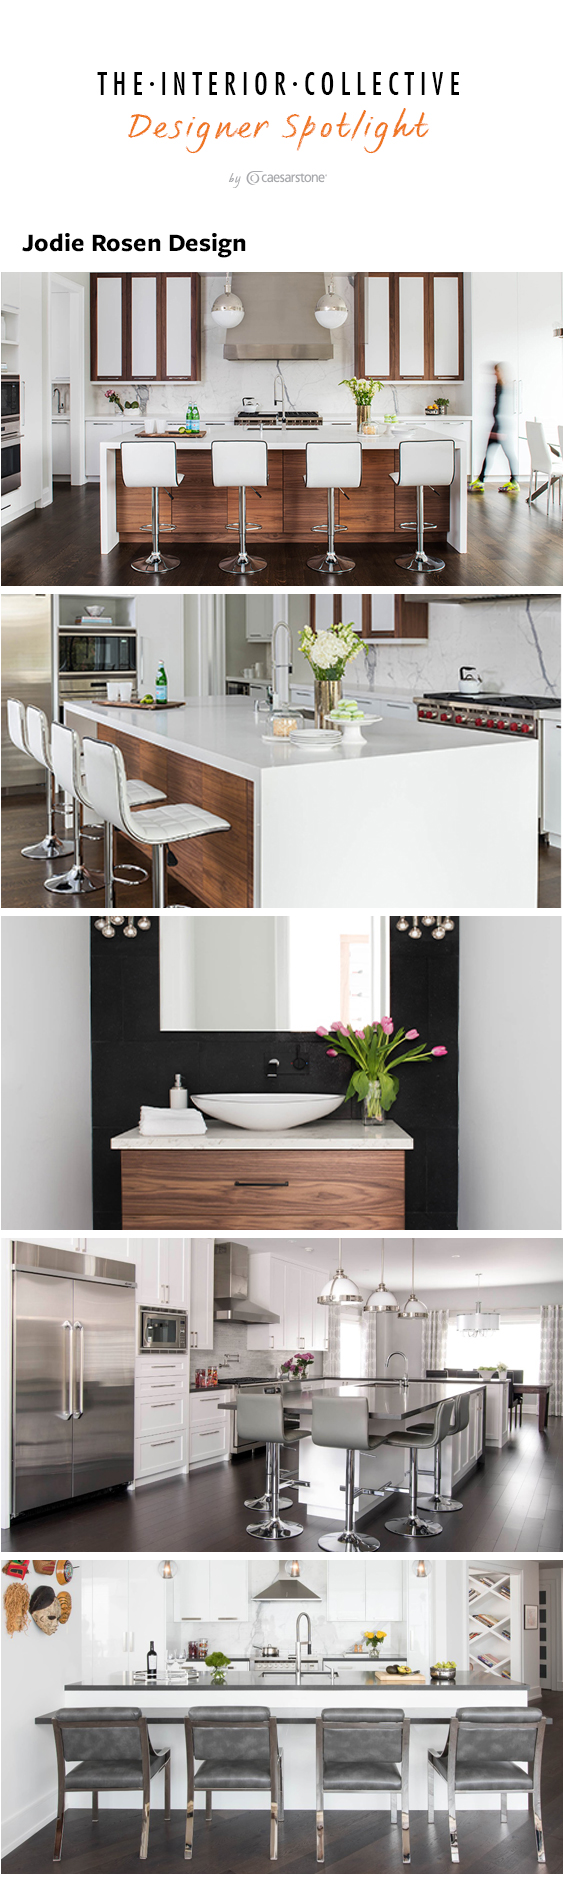 Check Out The Latest In Award Winning Jodie Rosen Designs' Kitchen Adorable Latest Designer Kitchen Design Inspiration